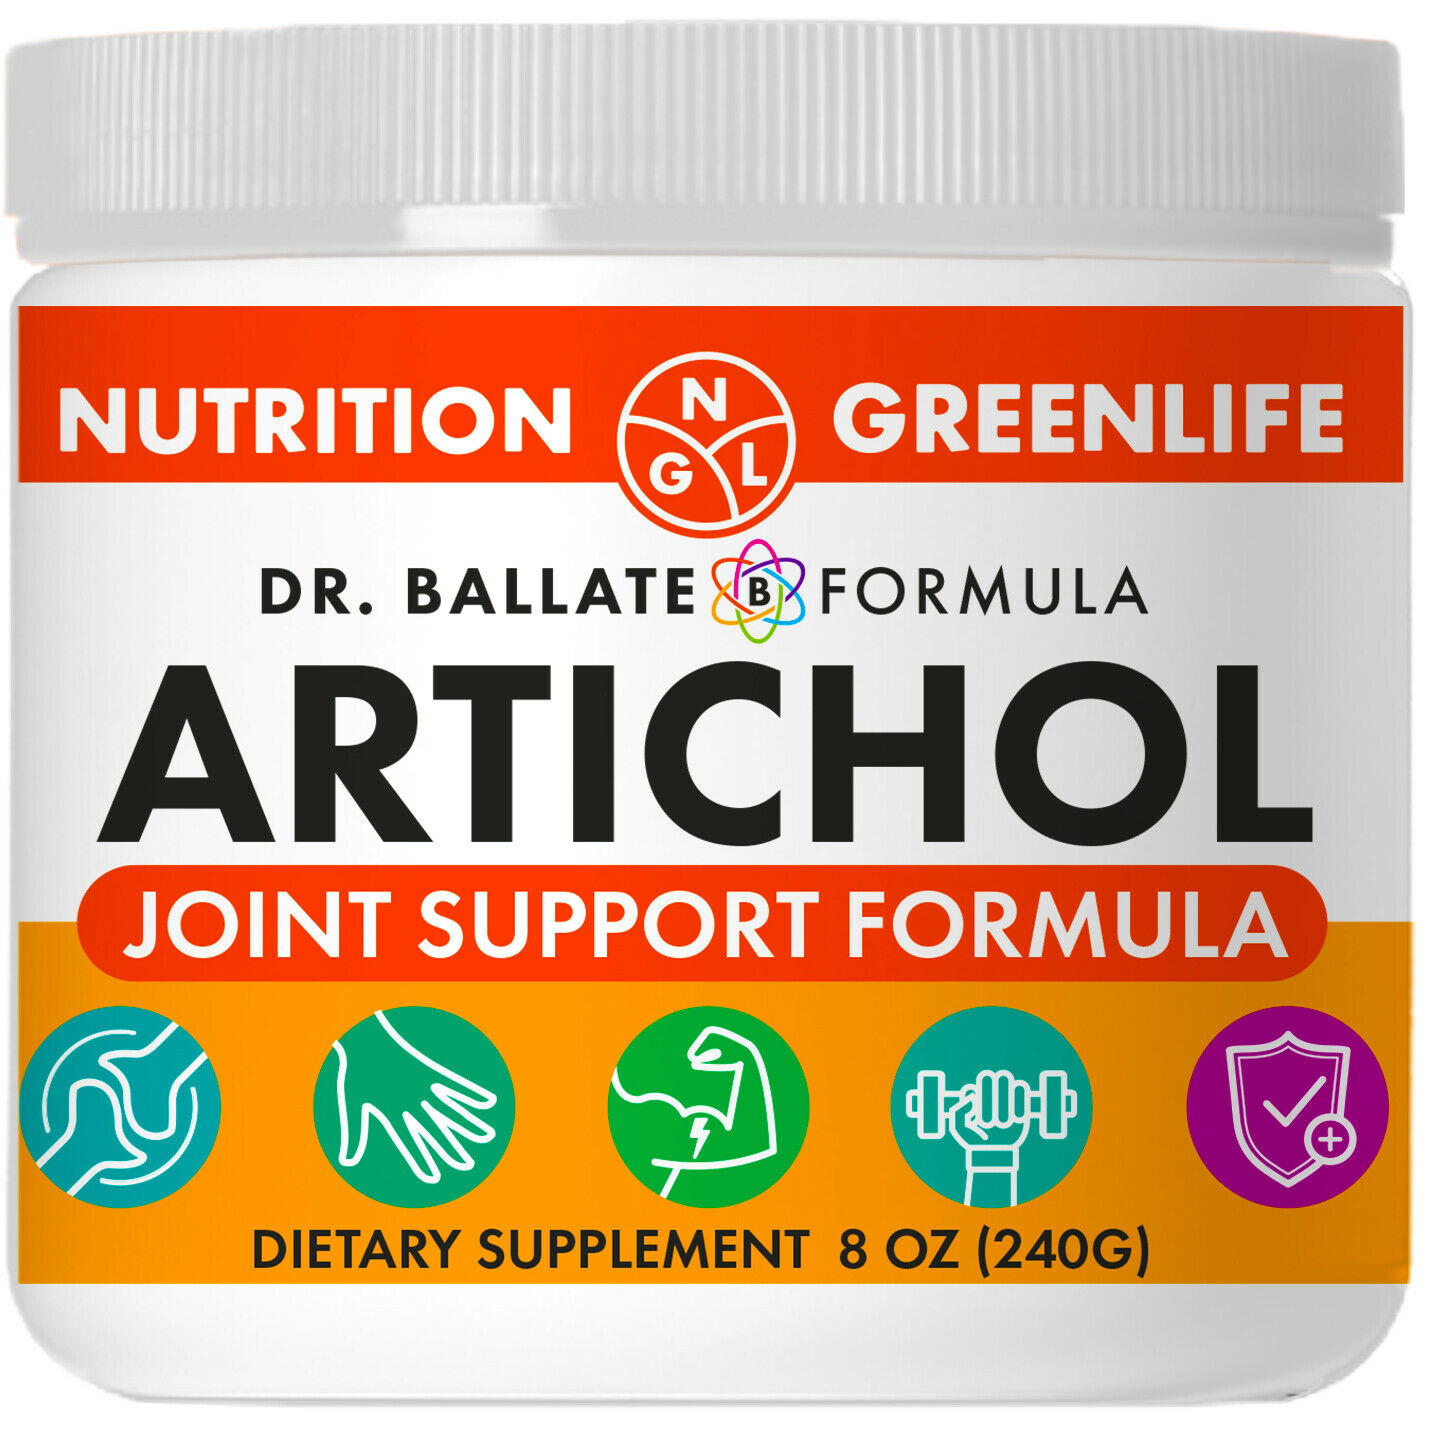 Artichol Joint Support Formula Extra Strength Glucosamine Ch